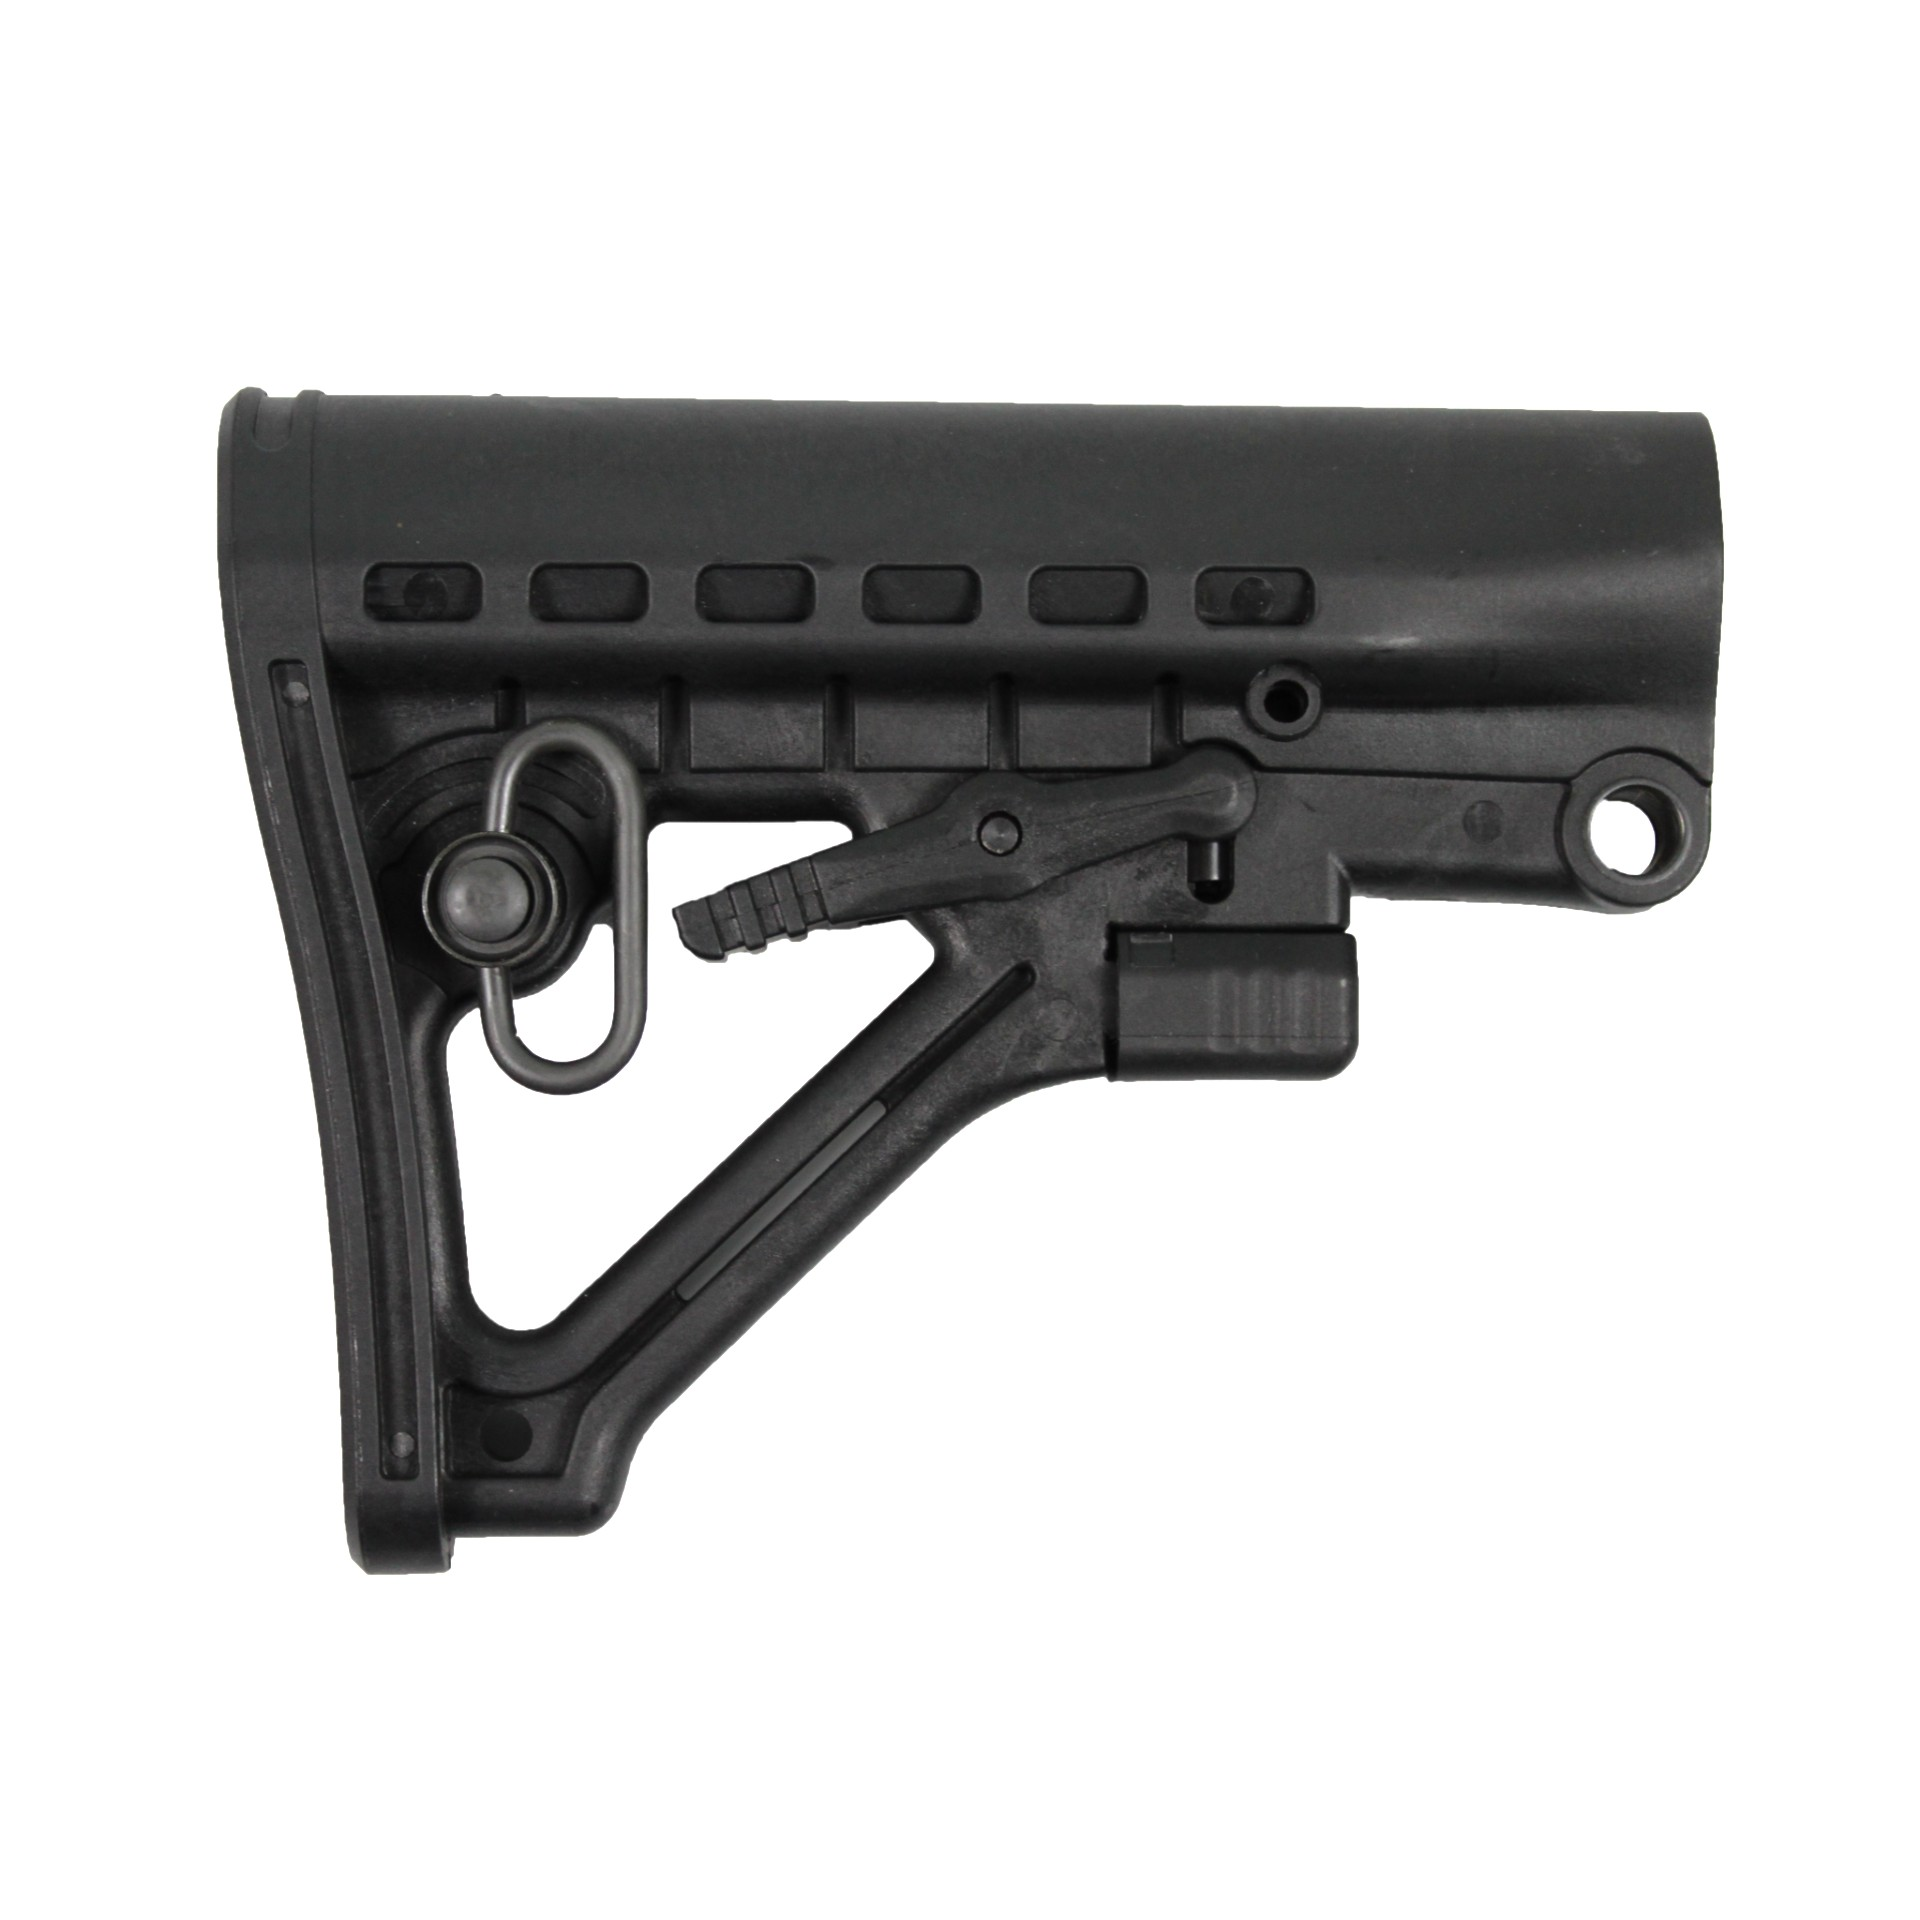 6 position adjustable stock